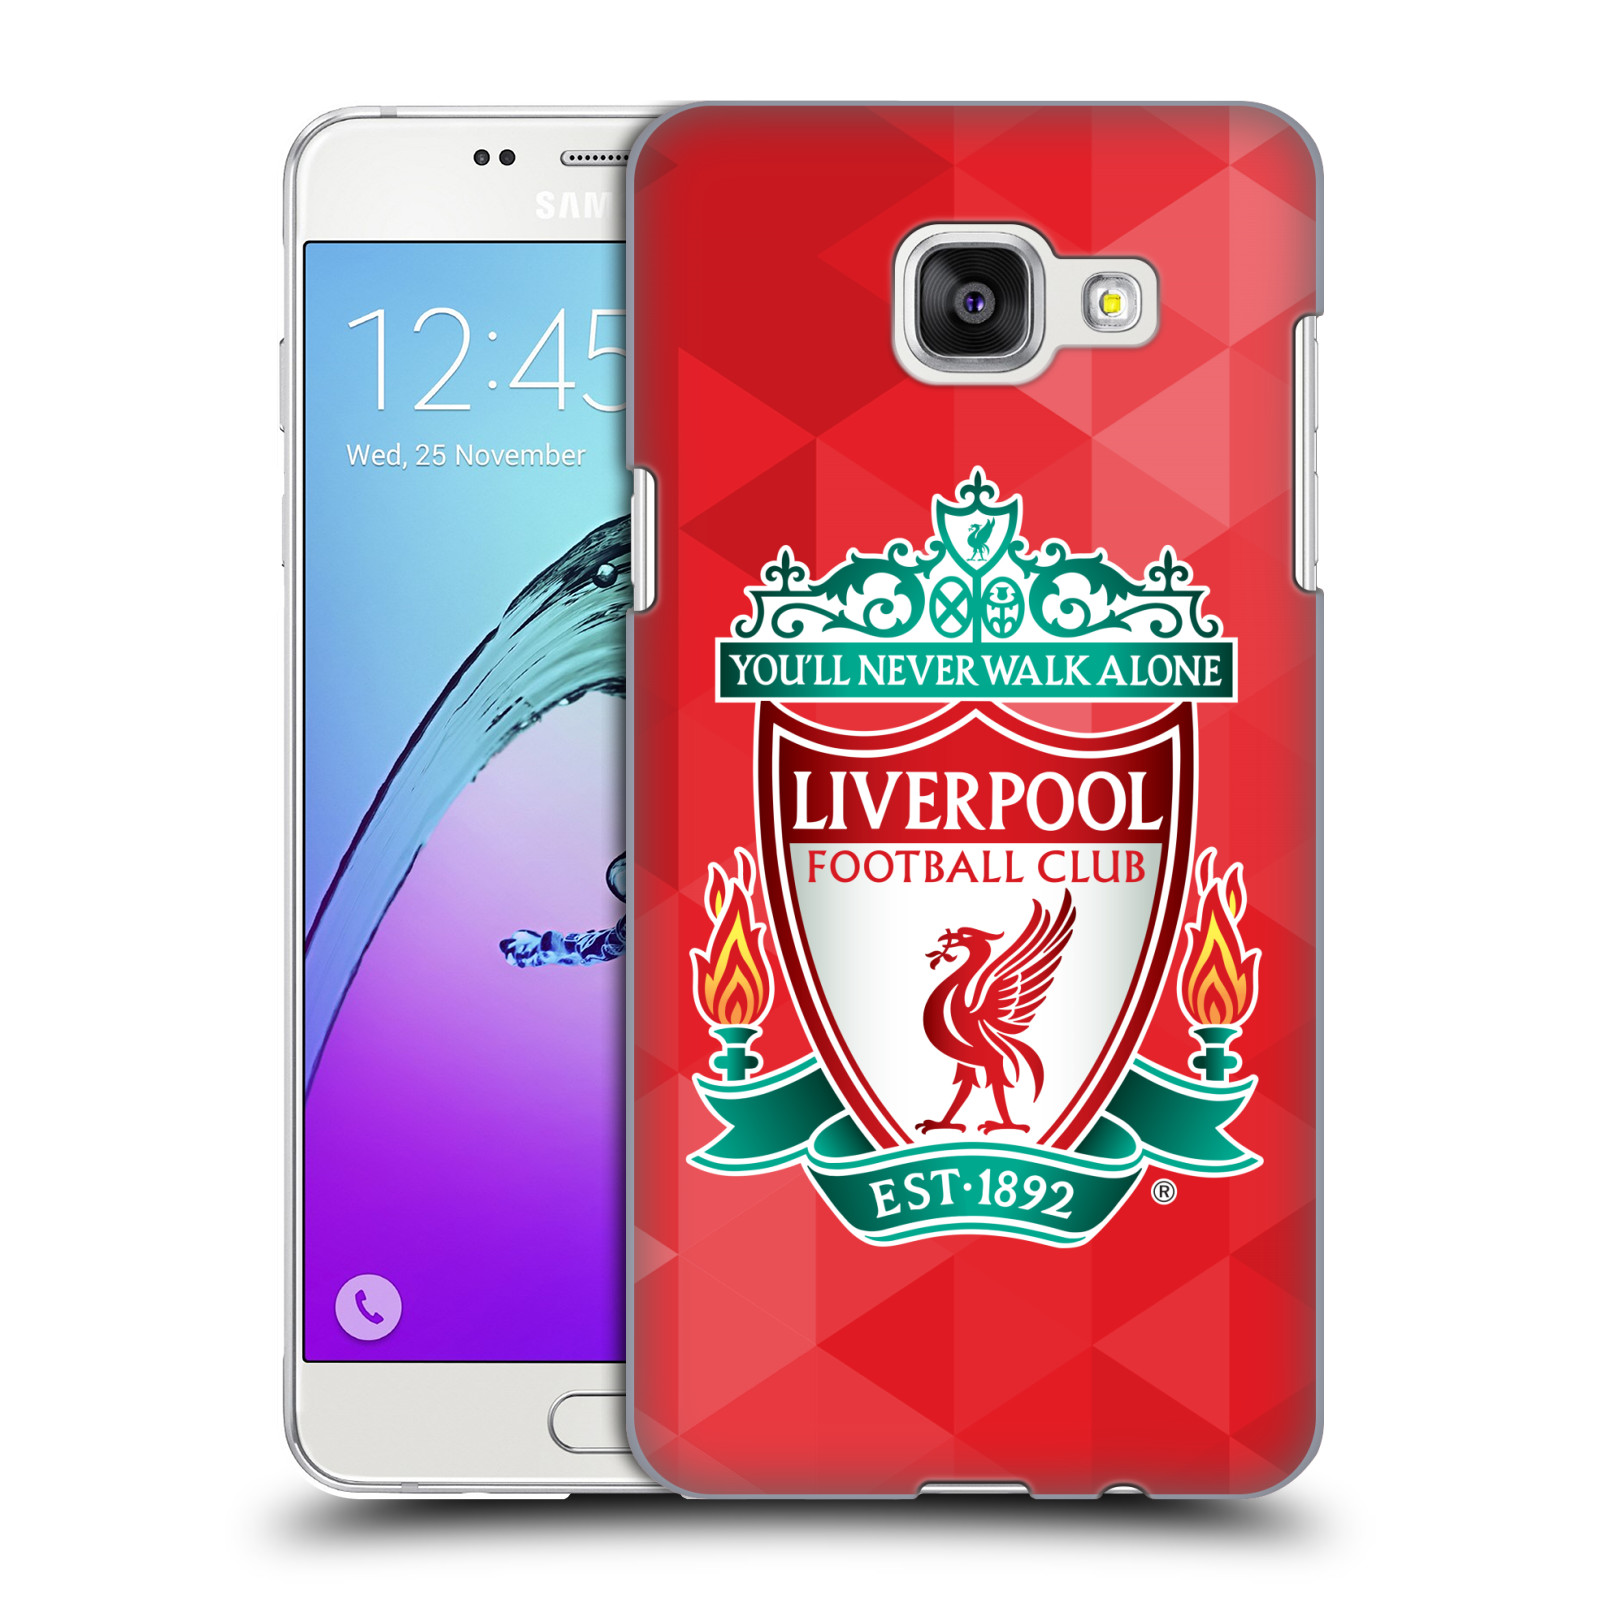 Plastové pouzdro na mobil Samsung Galaxy A5 (2016) HEAD CASE ZNAK LIVERPOOL FC OFFICIAL GEOMETRIC RED